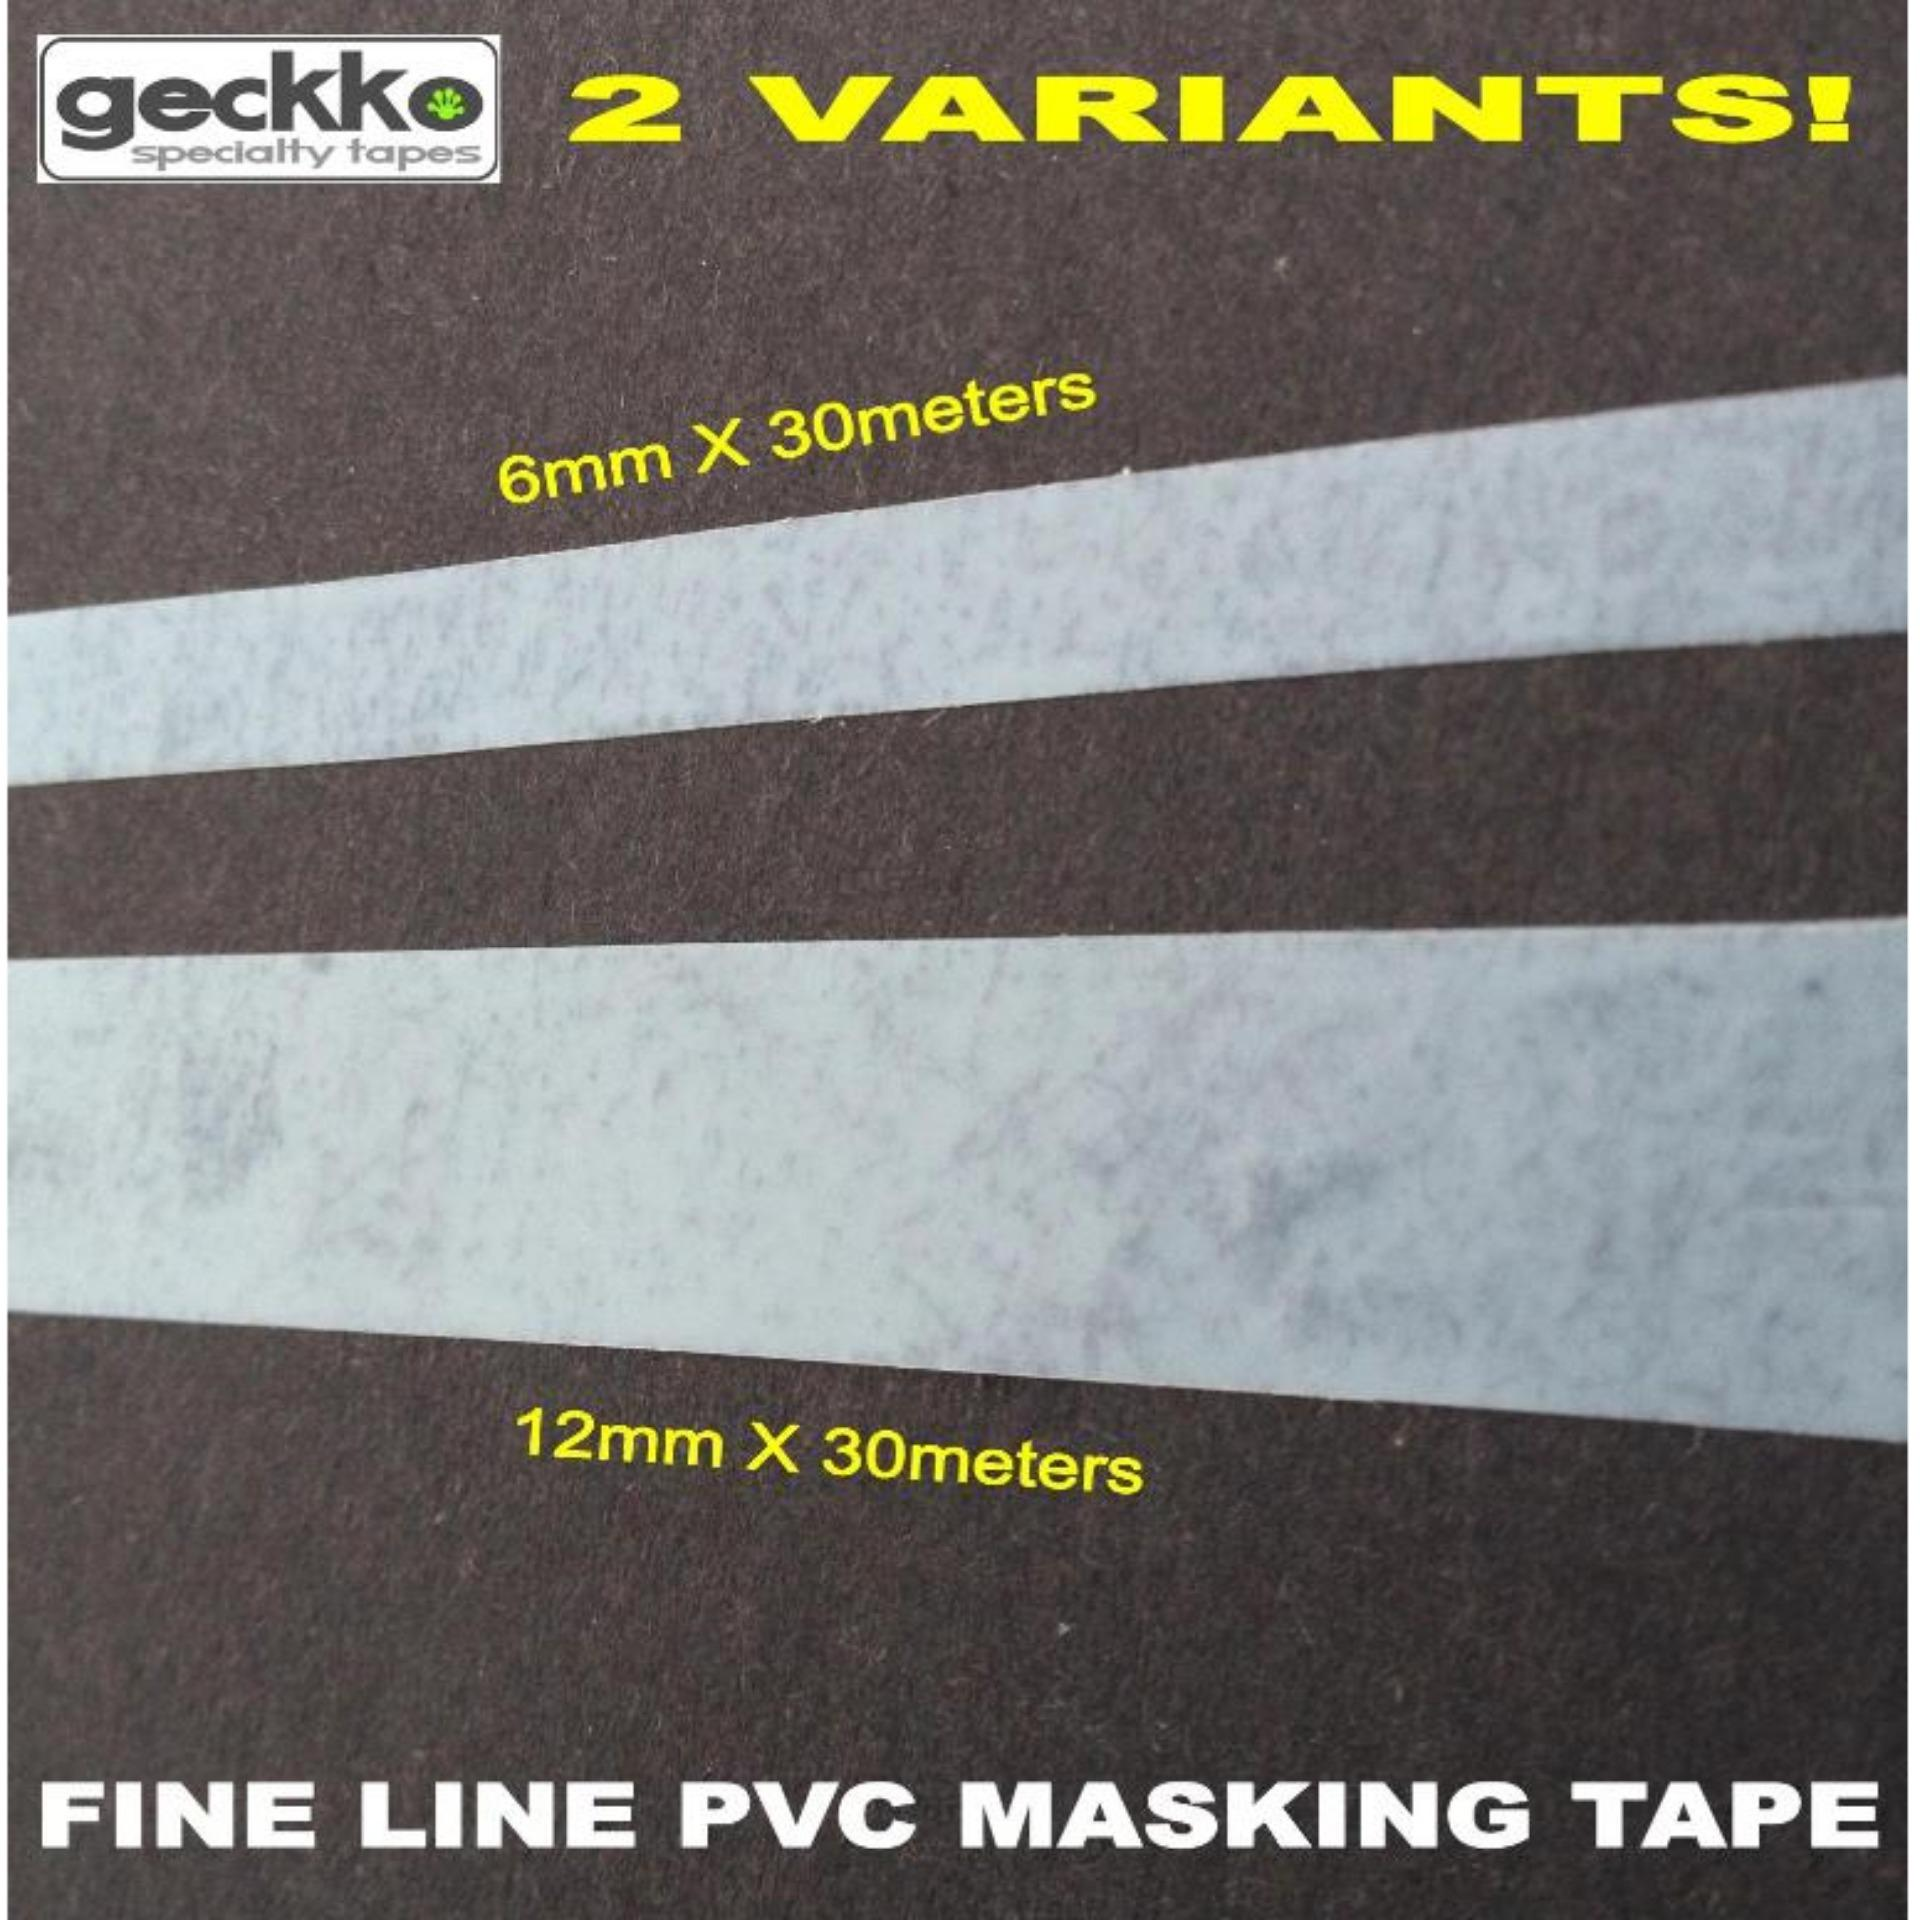 FINE LINE PVC MASKING TAPE by Geckko Specialty Tapes PinstripingPin Stripe Graphics Car Decal Car Art ...